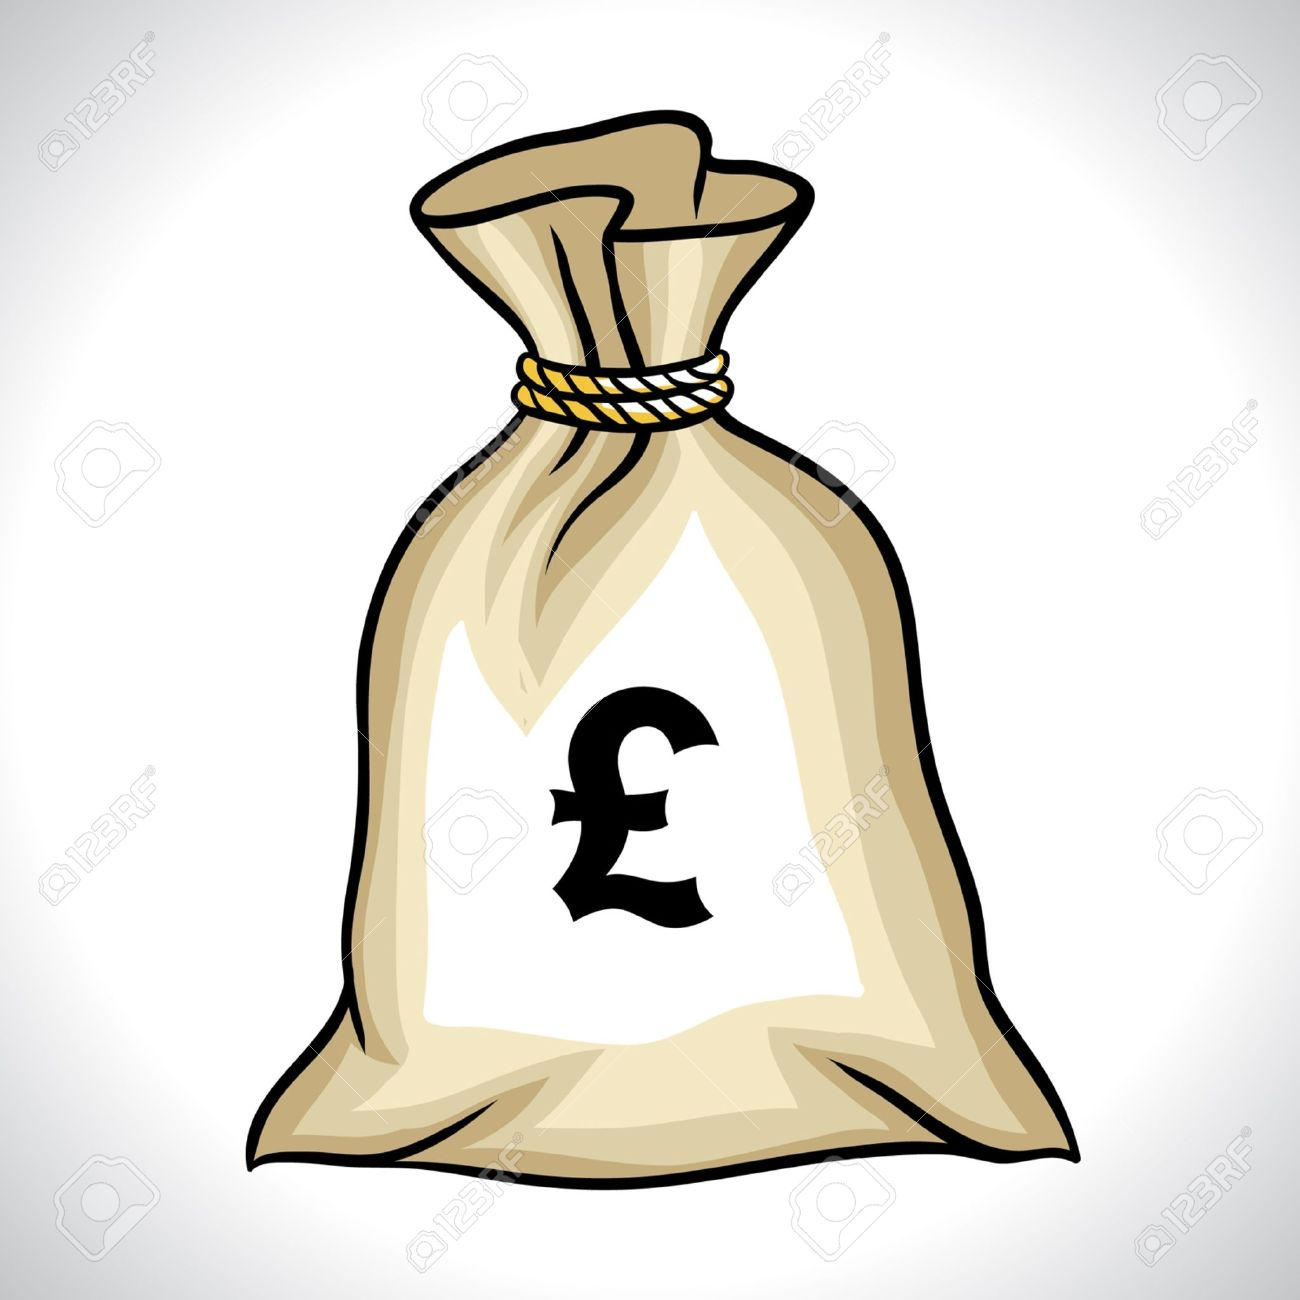 Money bag with pound sign vector illustration royalty free money bag with pound sign vector illustration stock vector 13026413 buycottarizona Images